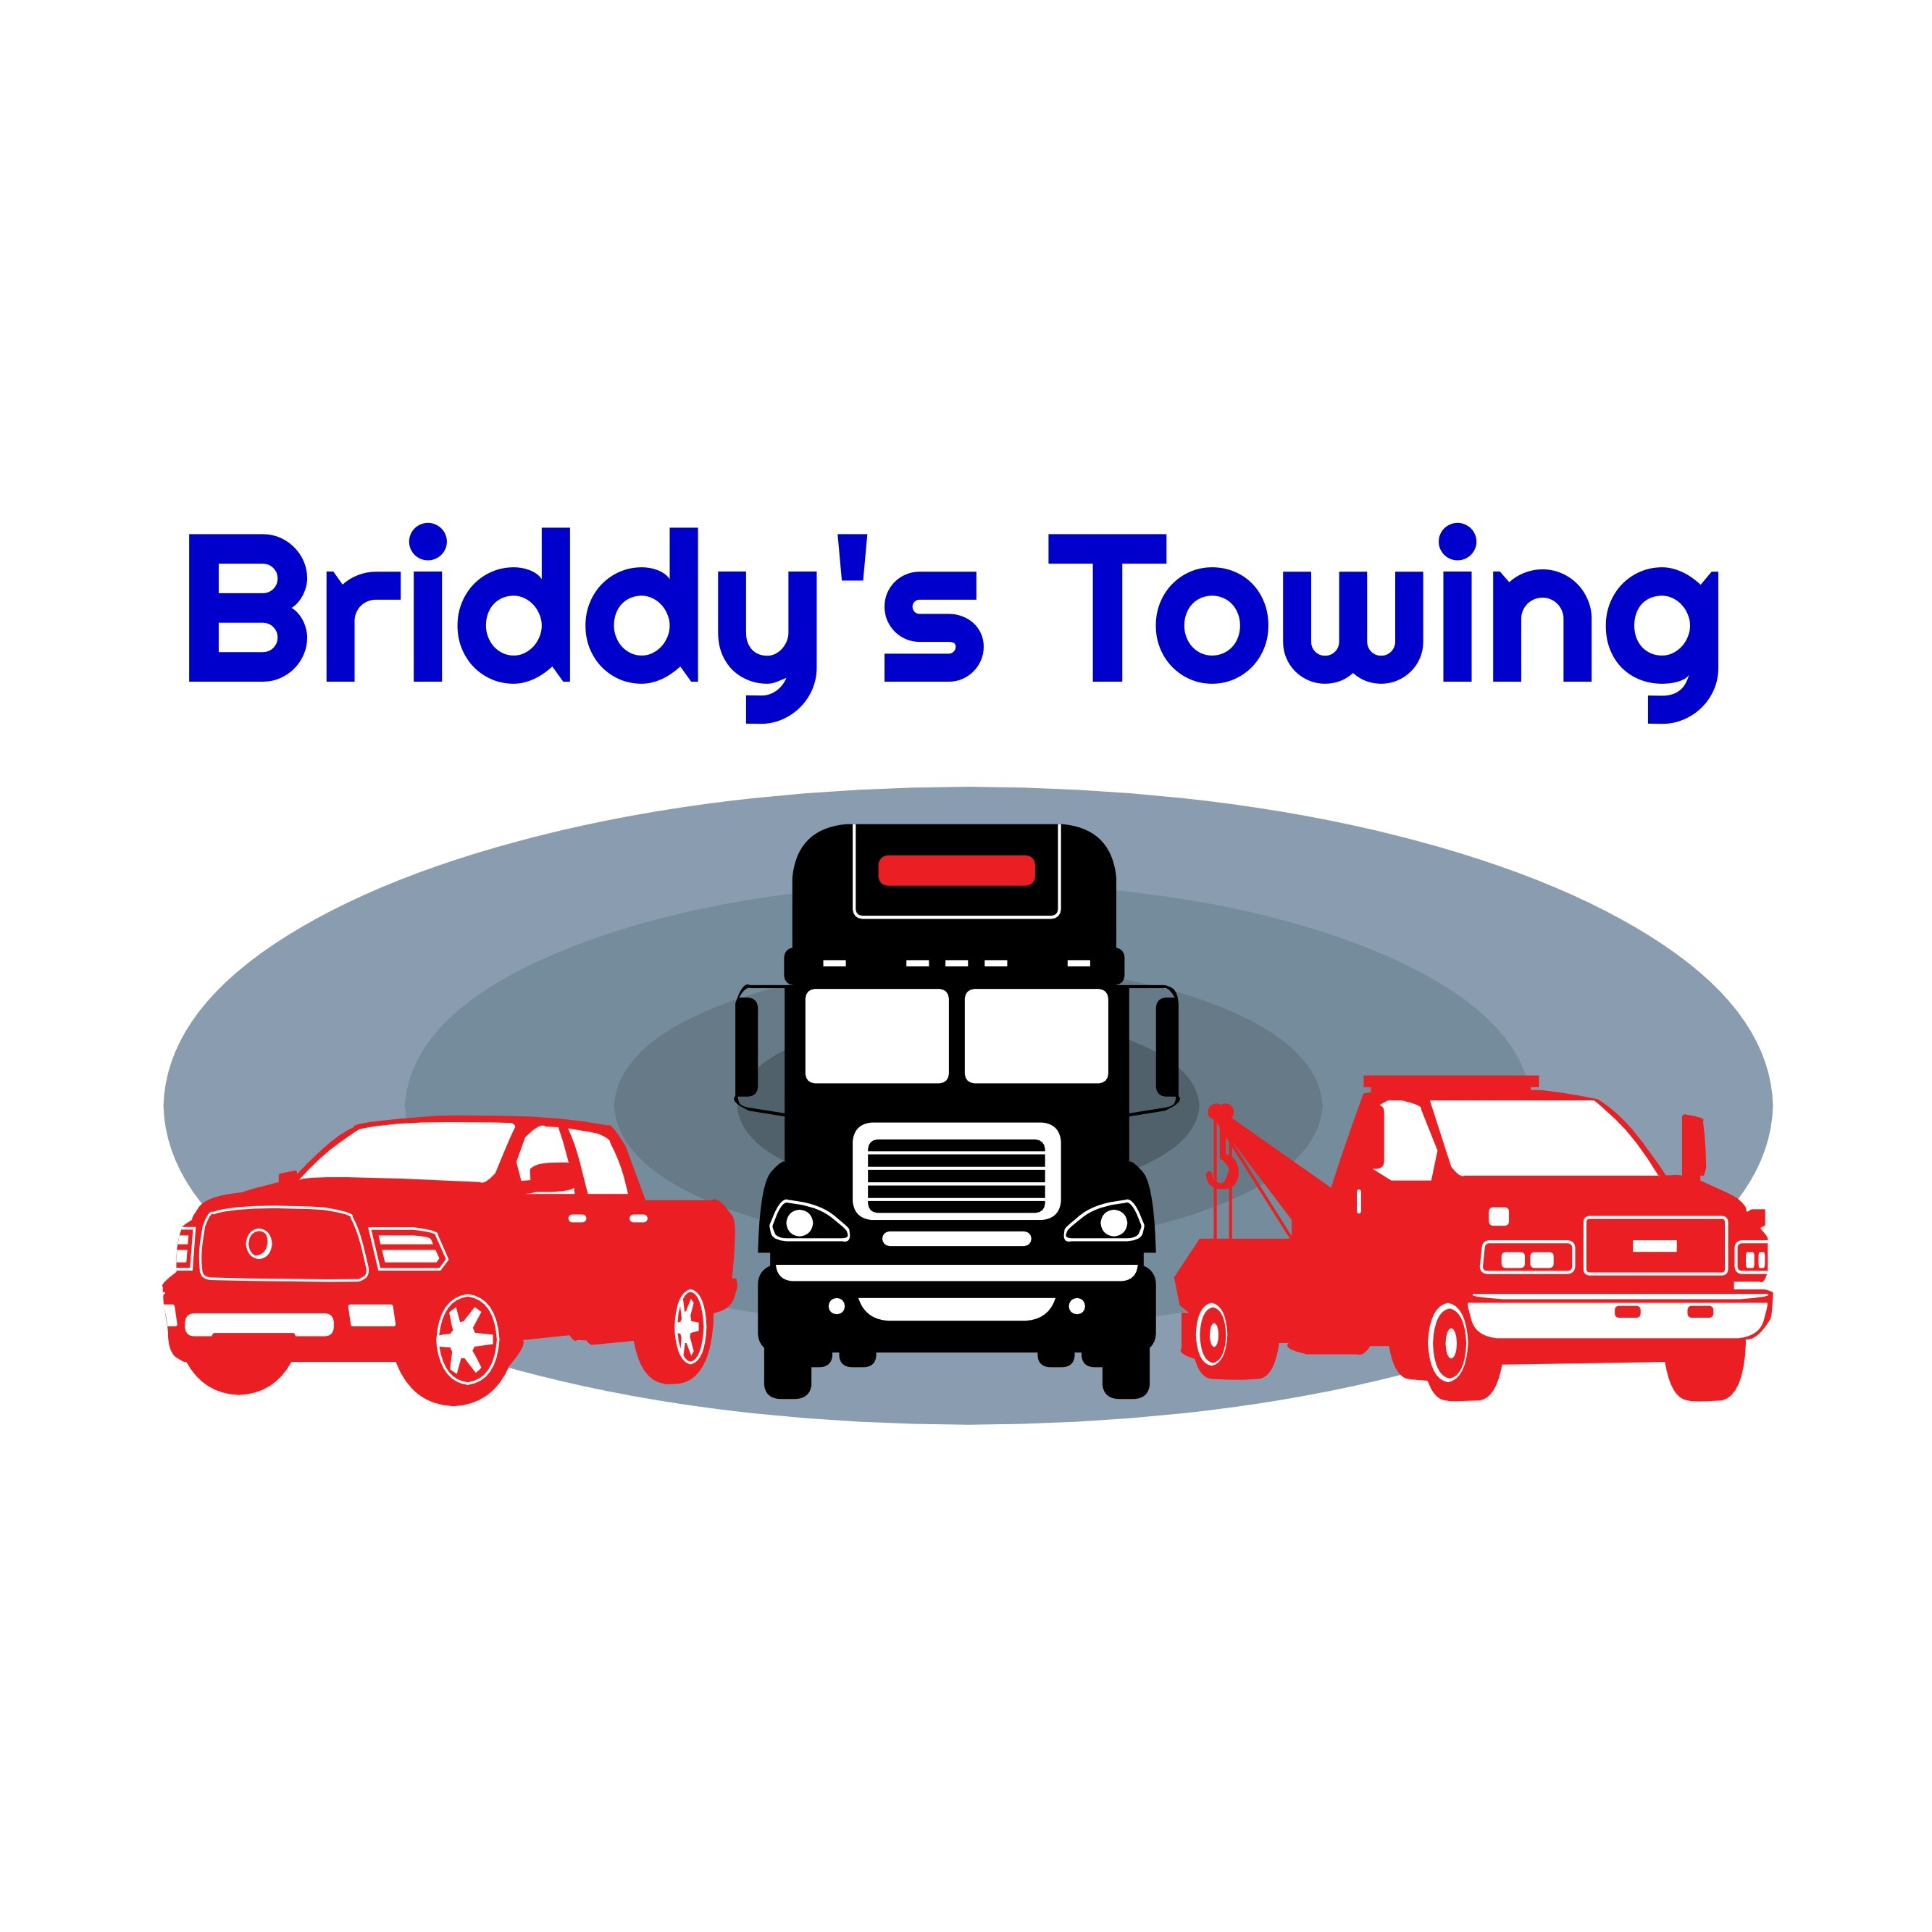 Briddy's Towing